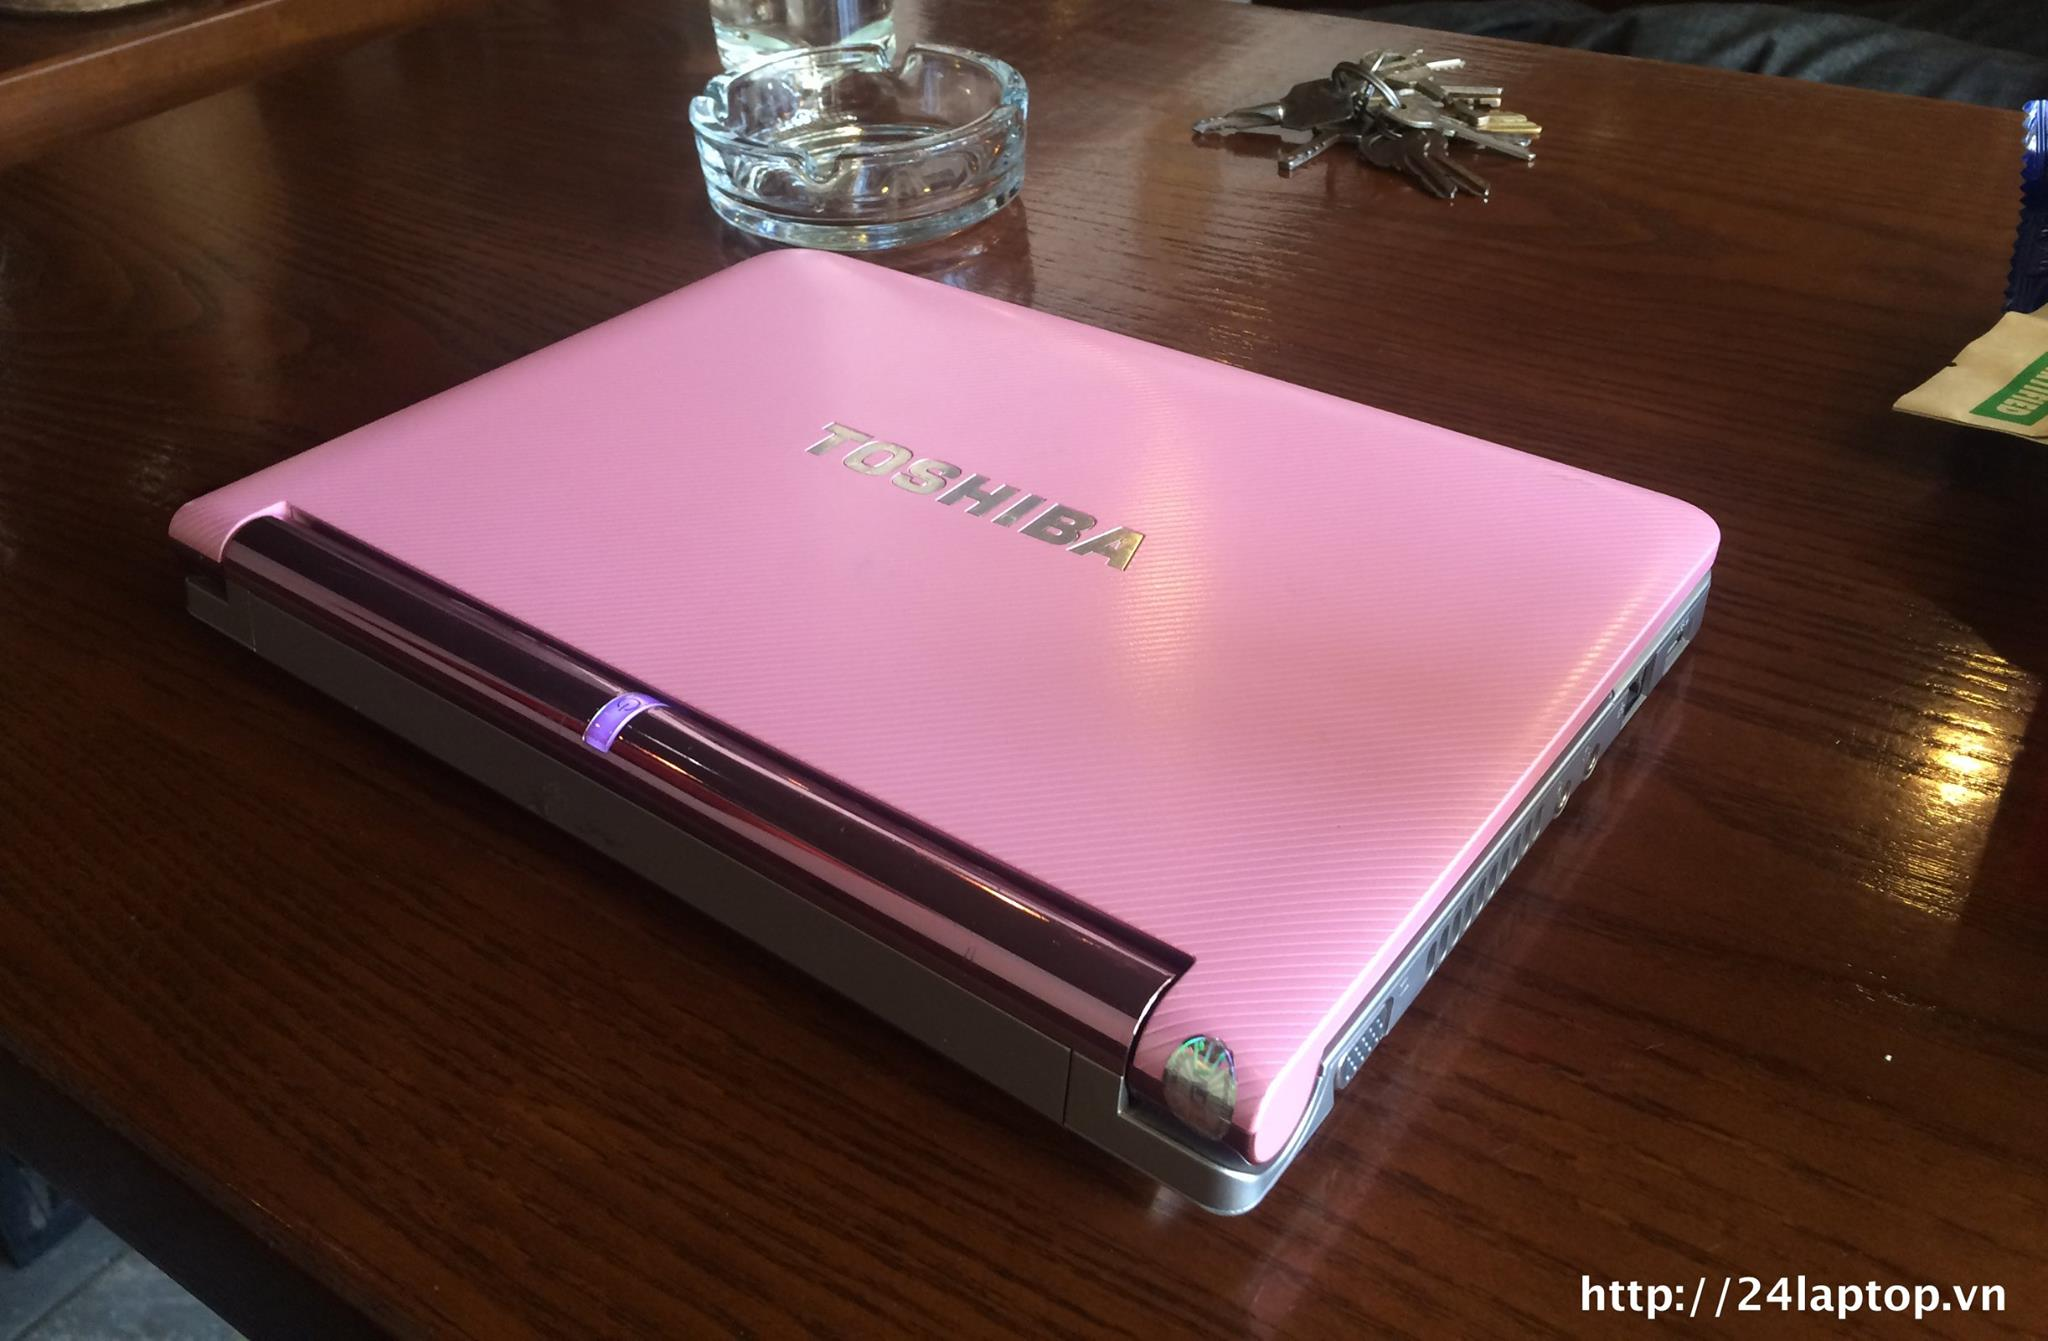 Laptop Toshiba NB200.jpg